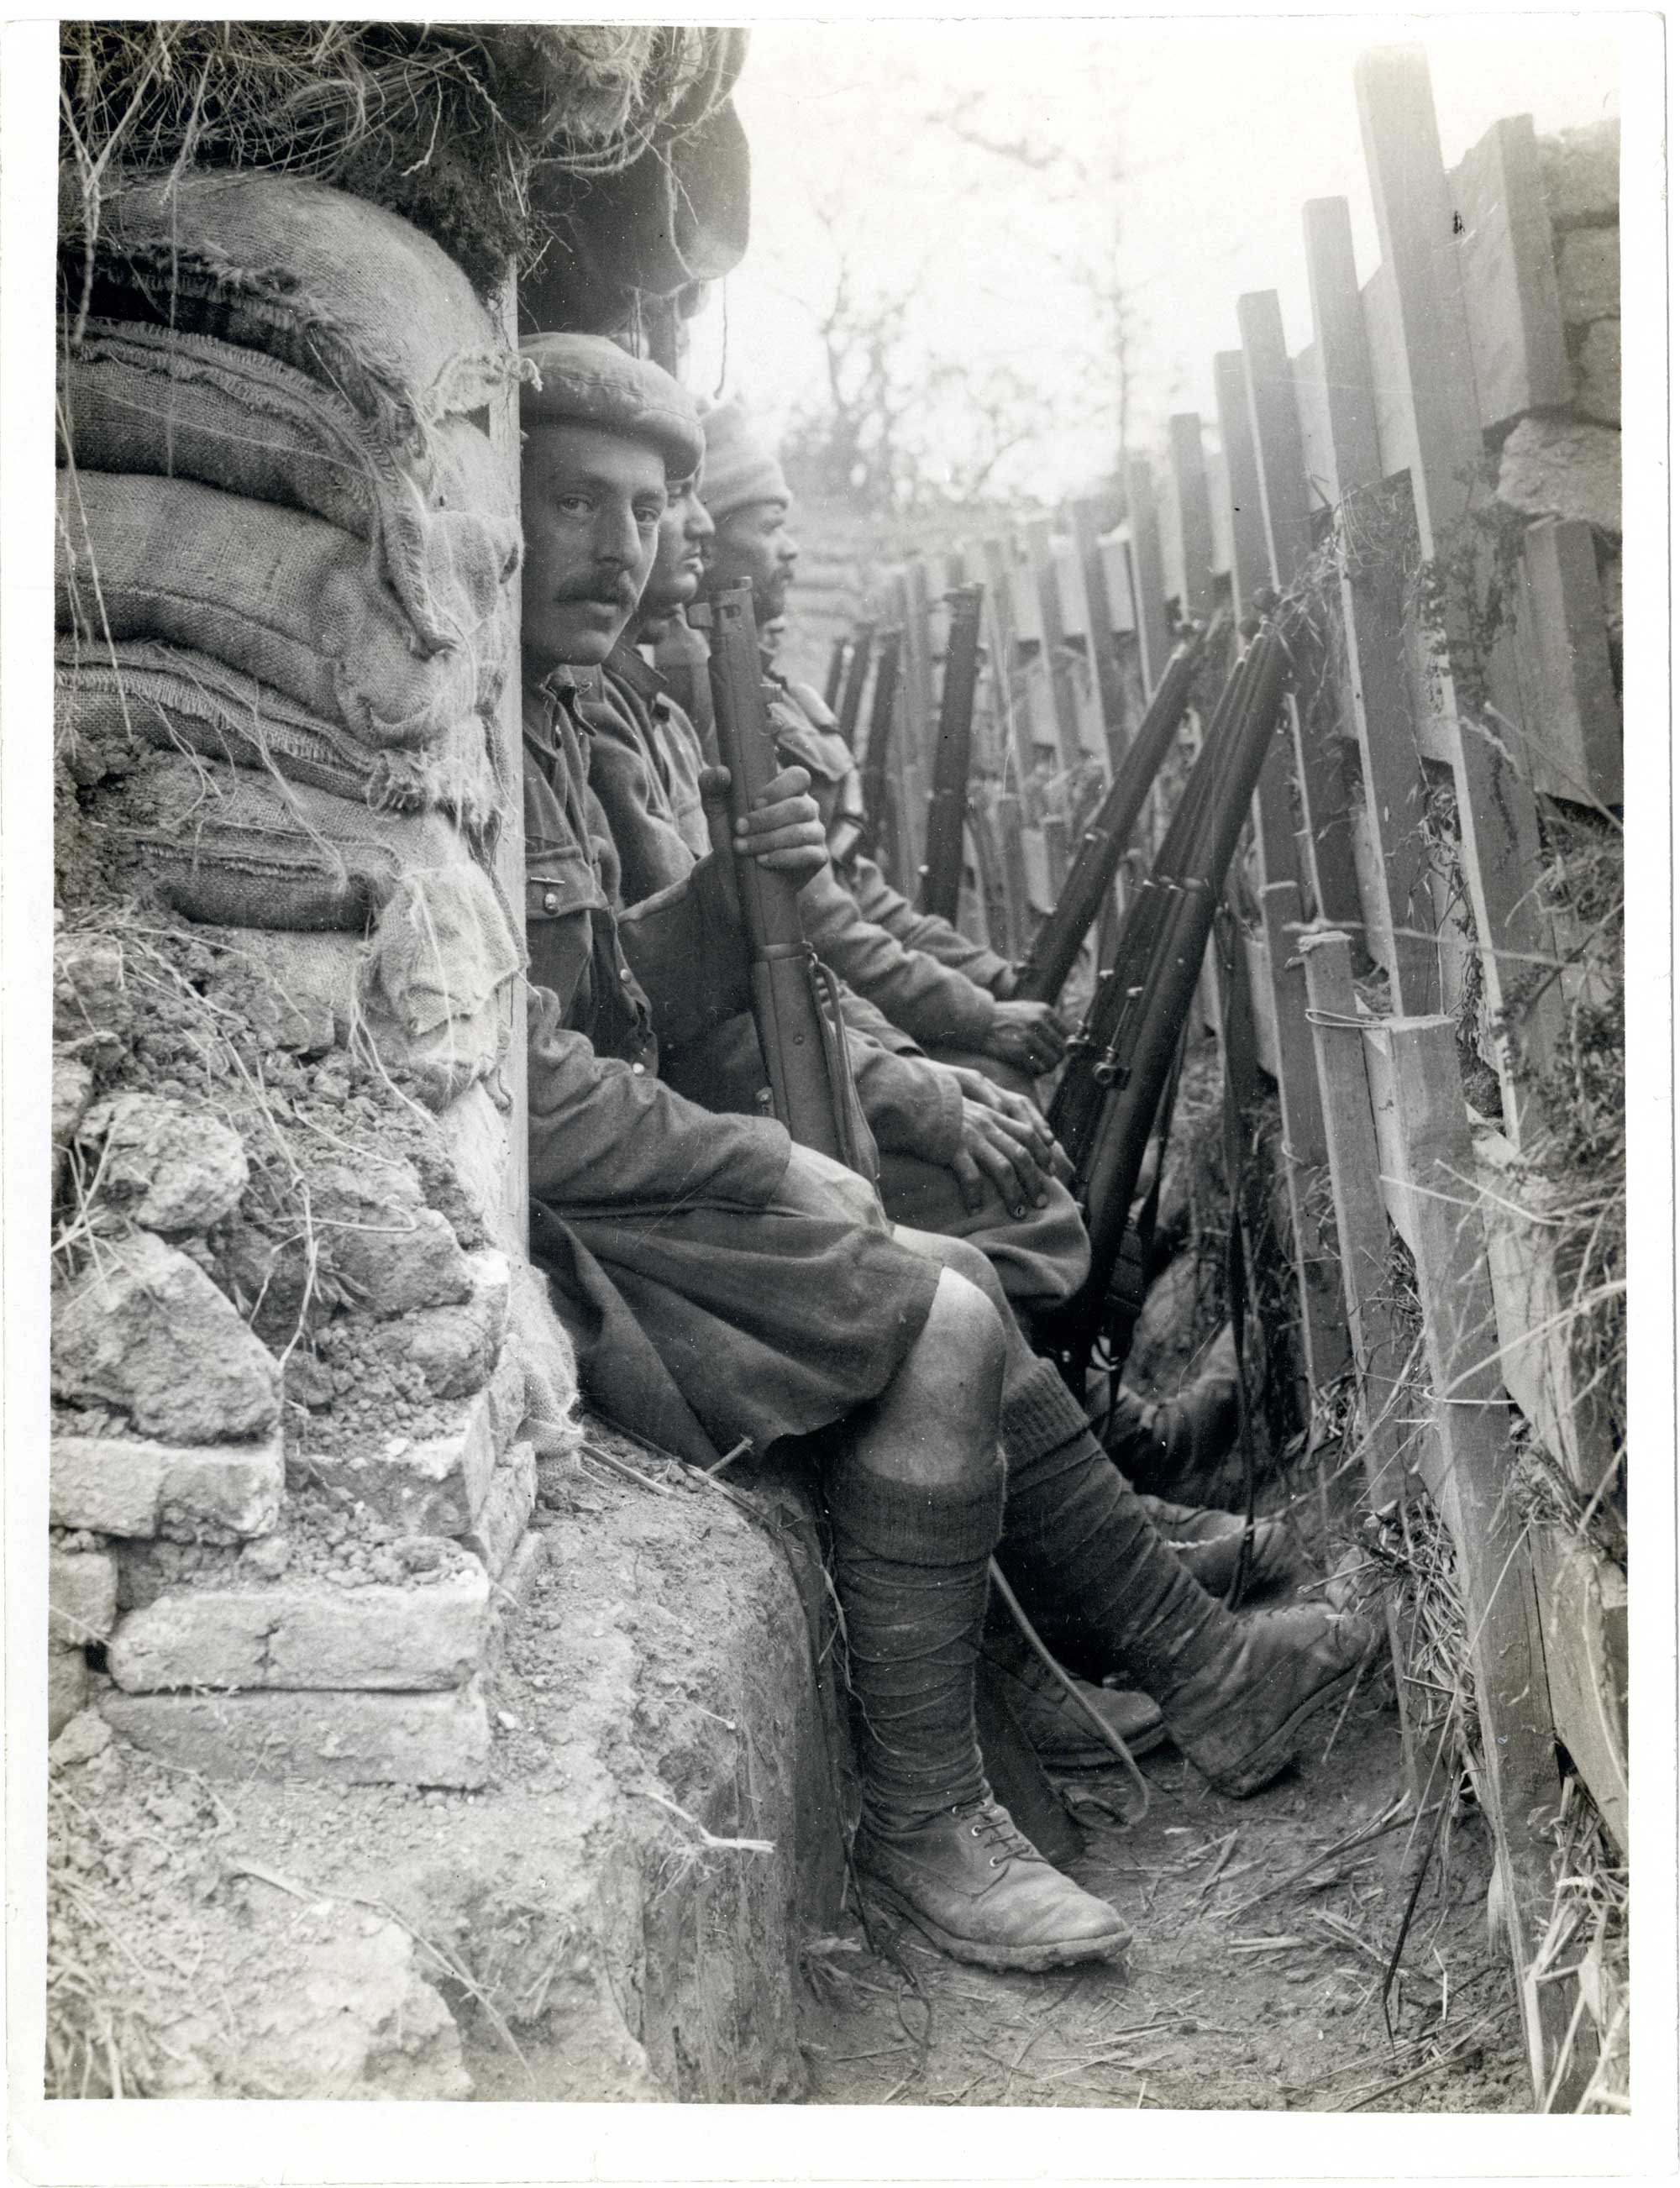 Photograph showing a group of soldiers, Highlander and Indian Dogras, sitting in a trench. Each man has a rifle in front of him, to which a bayonet could be fixed for close combat, 1915.